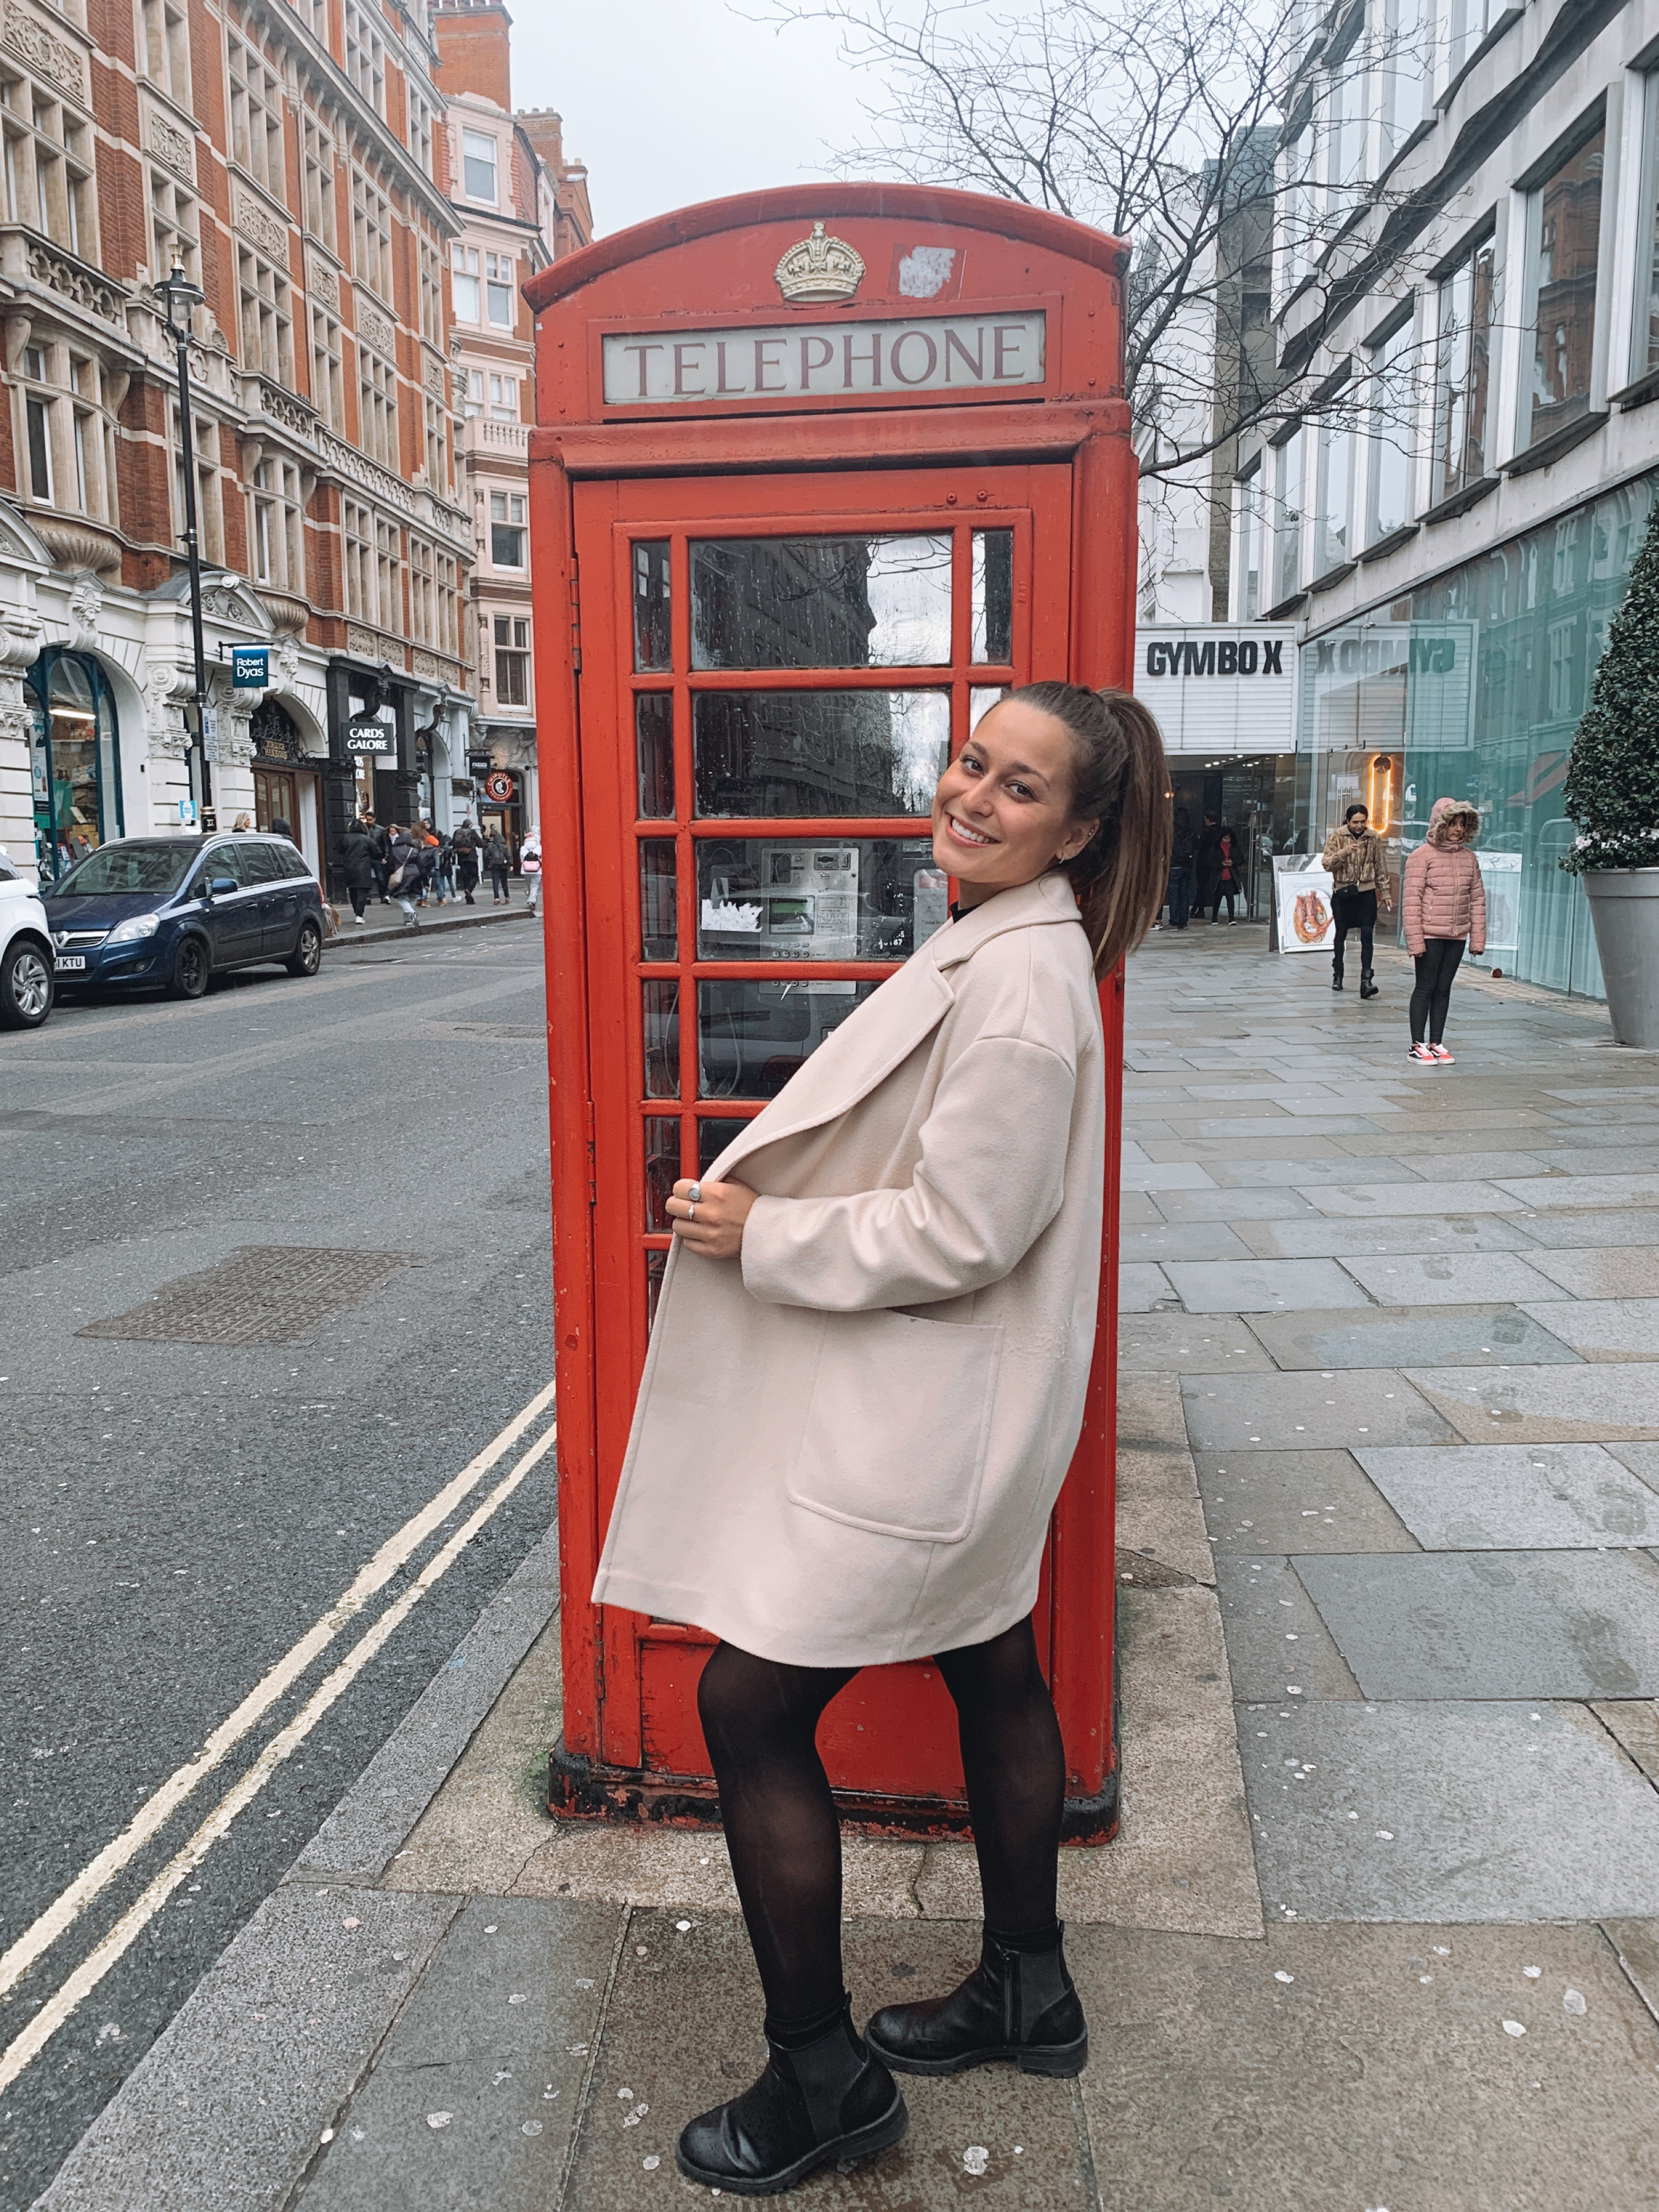 Classic telephone booth shot in London